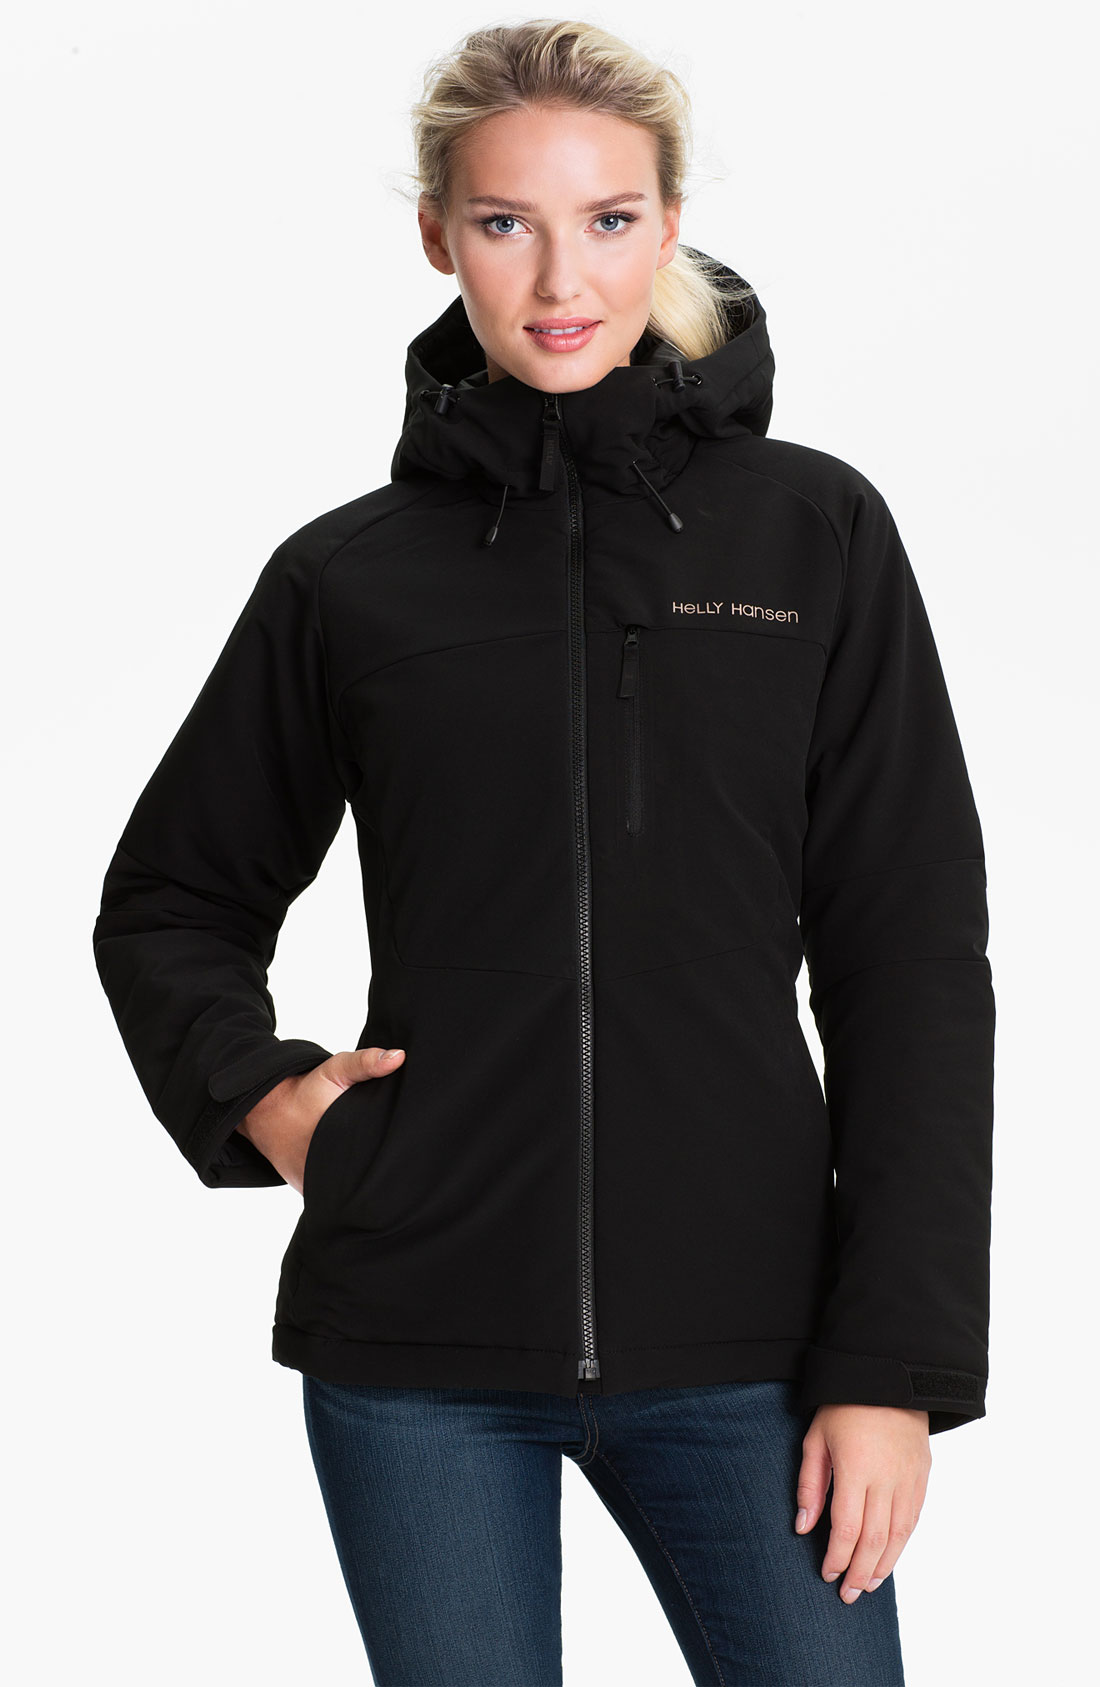 helly hansen rapide insulated soft shell jacket in black lyst. Black Bedroom Furniture Sets. Home Design Ideas